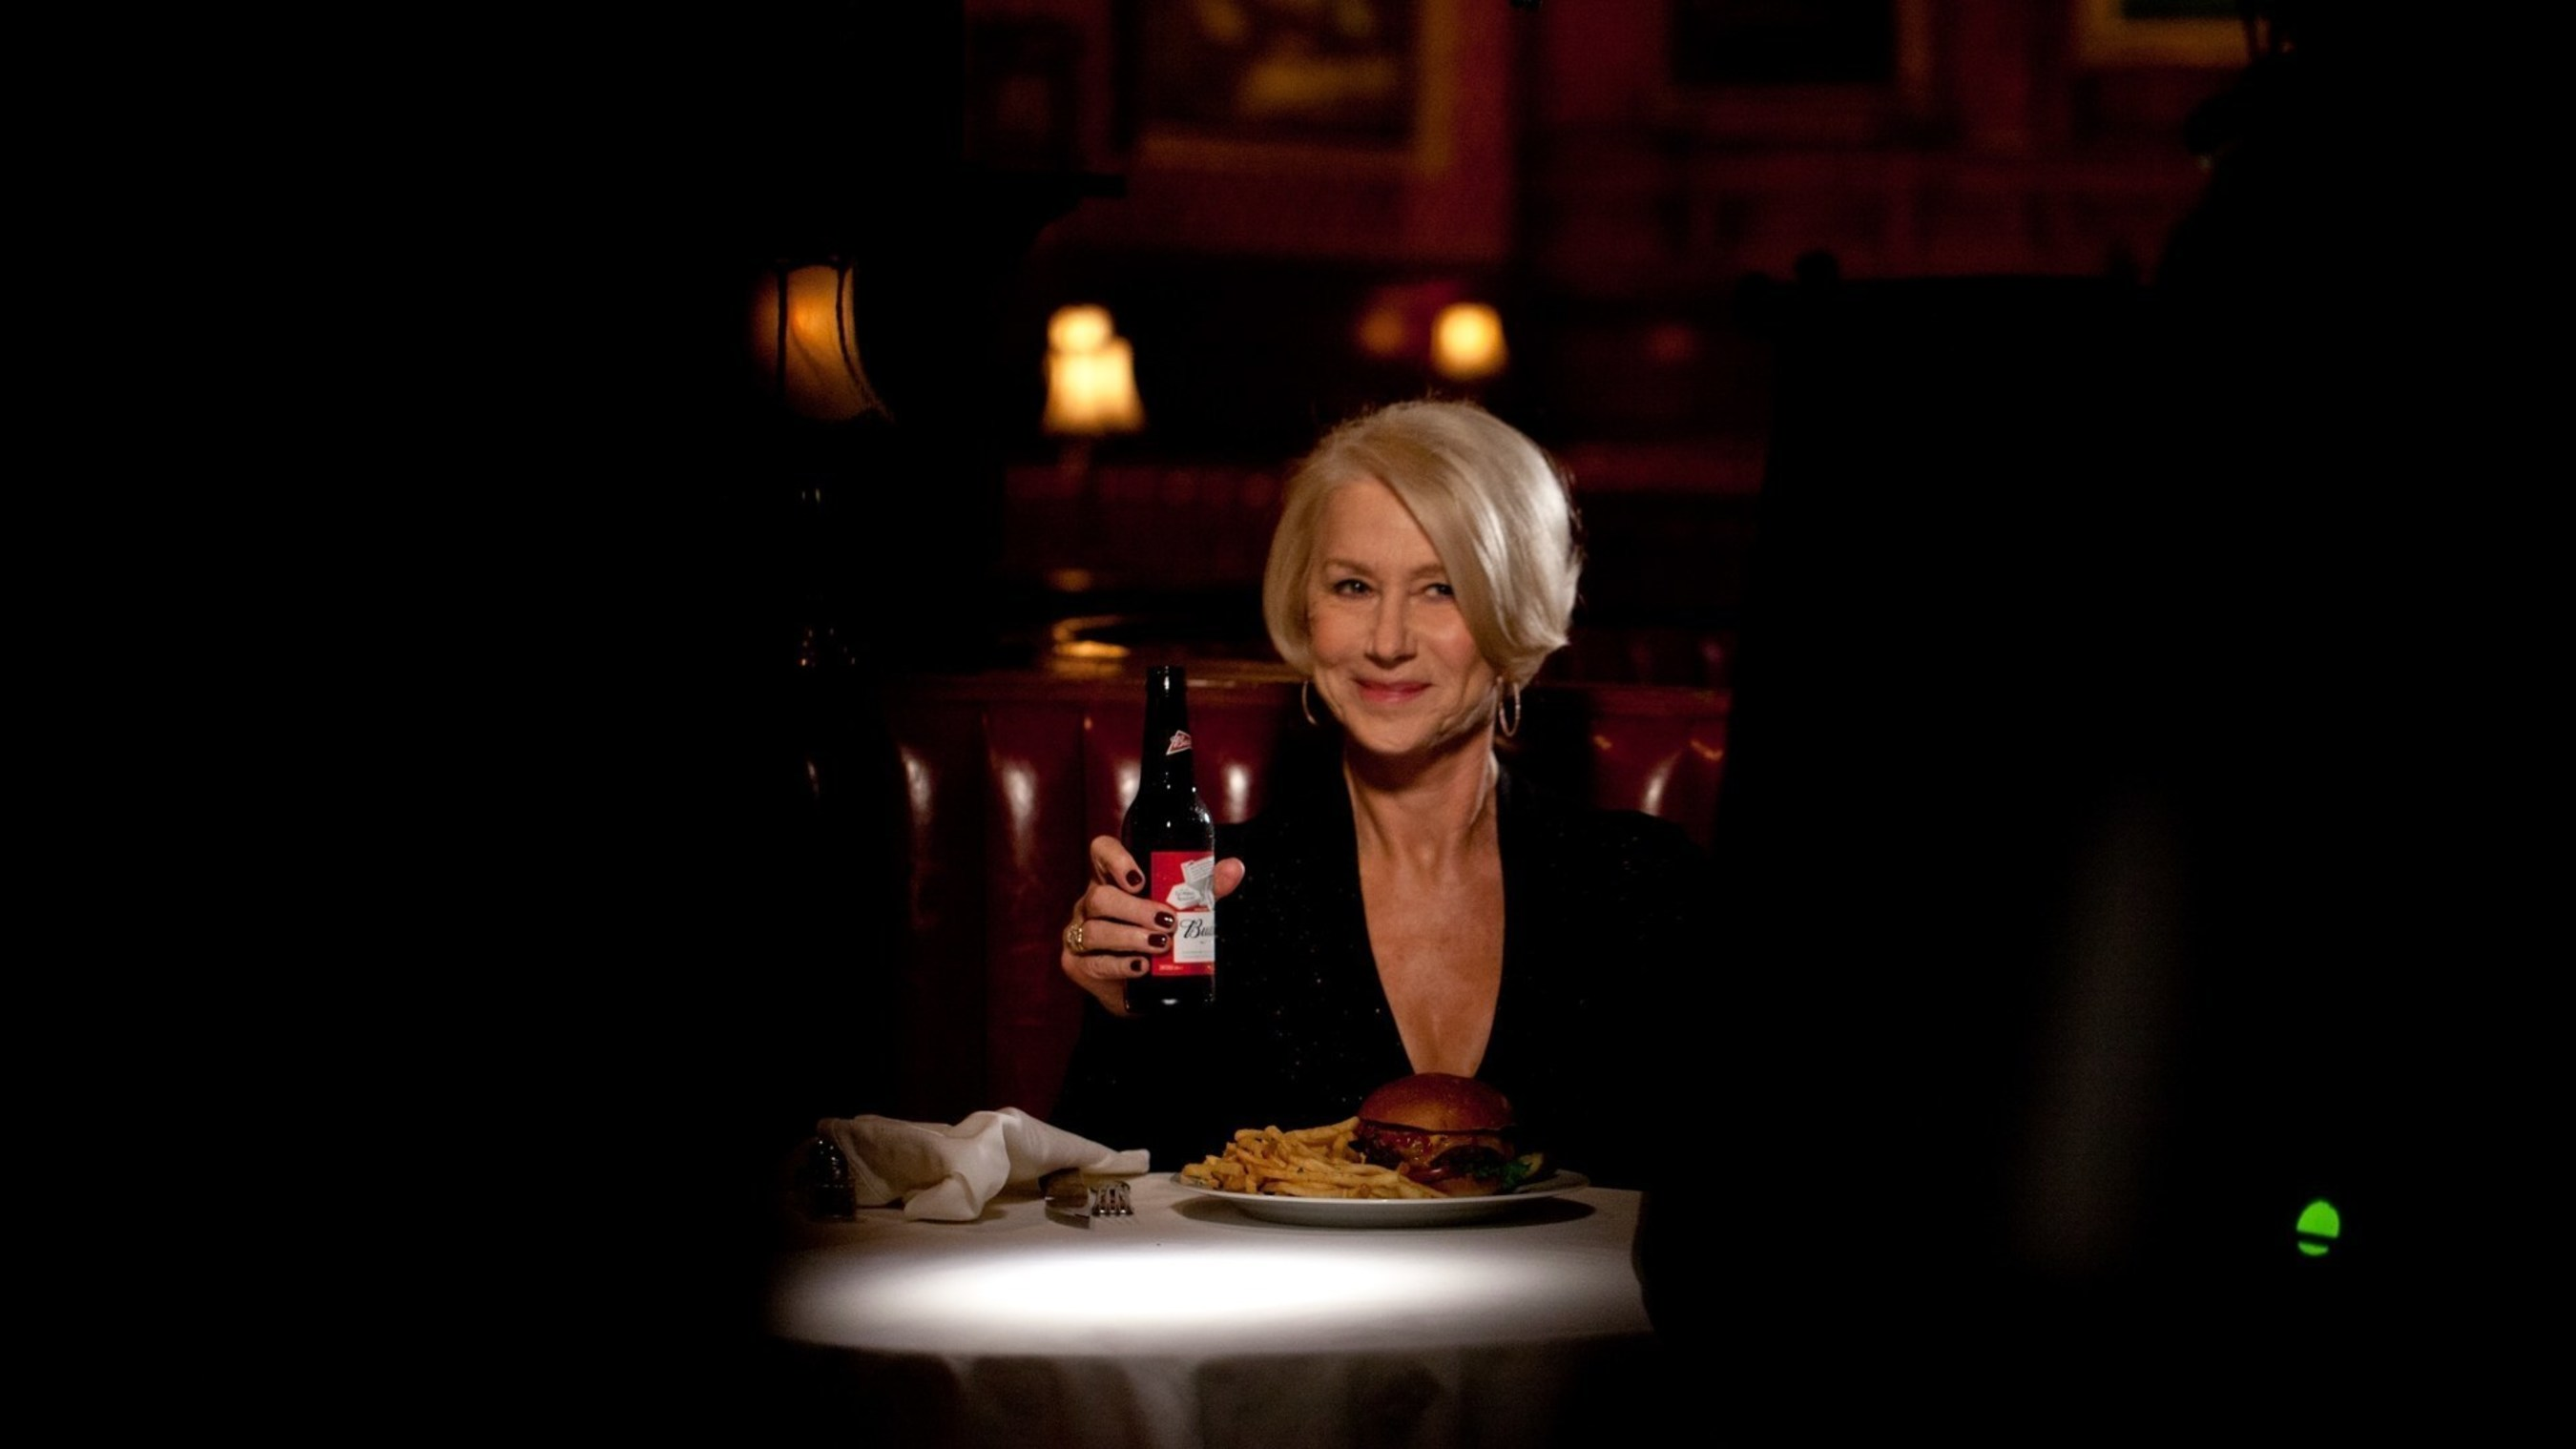 Budweiser and Helen Mirren put drunk driving on notice in bold new Super Bowl campaign, which includes ...